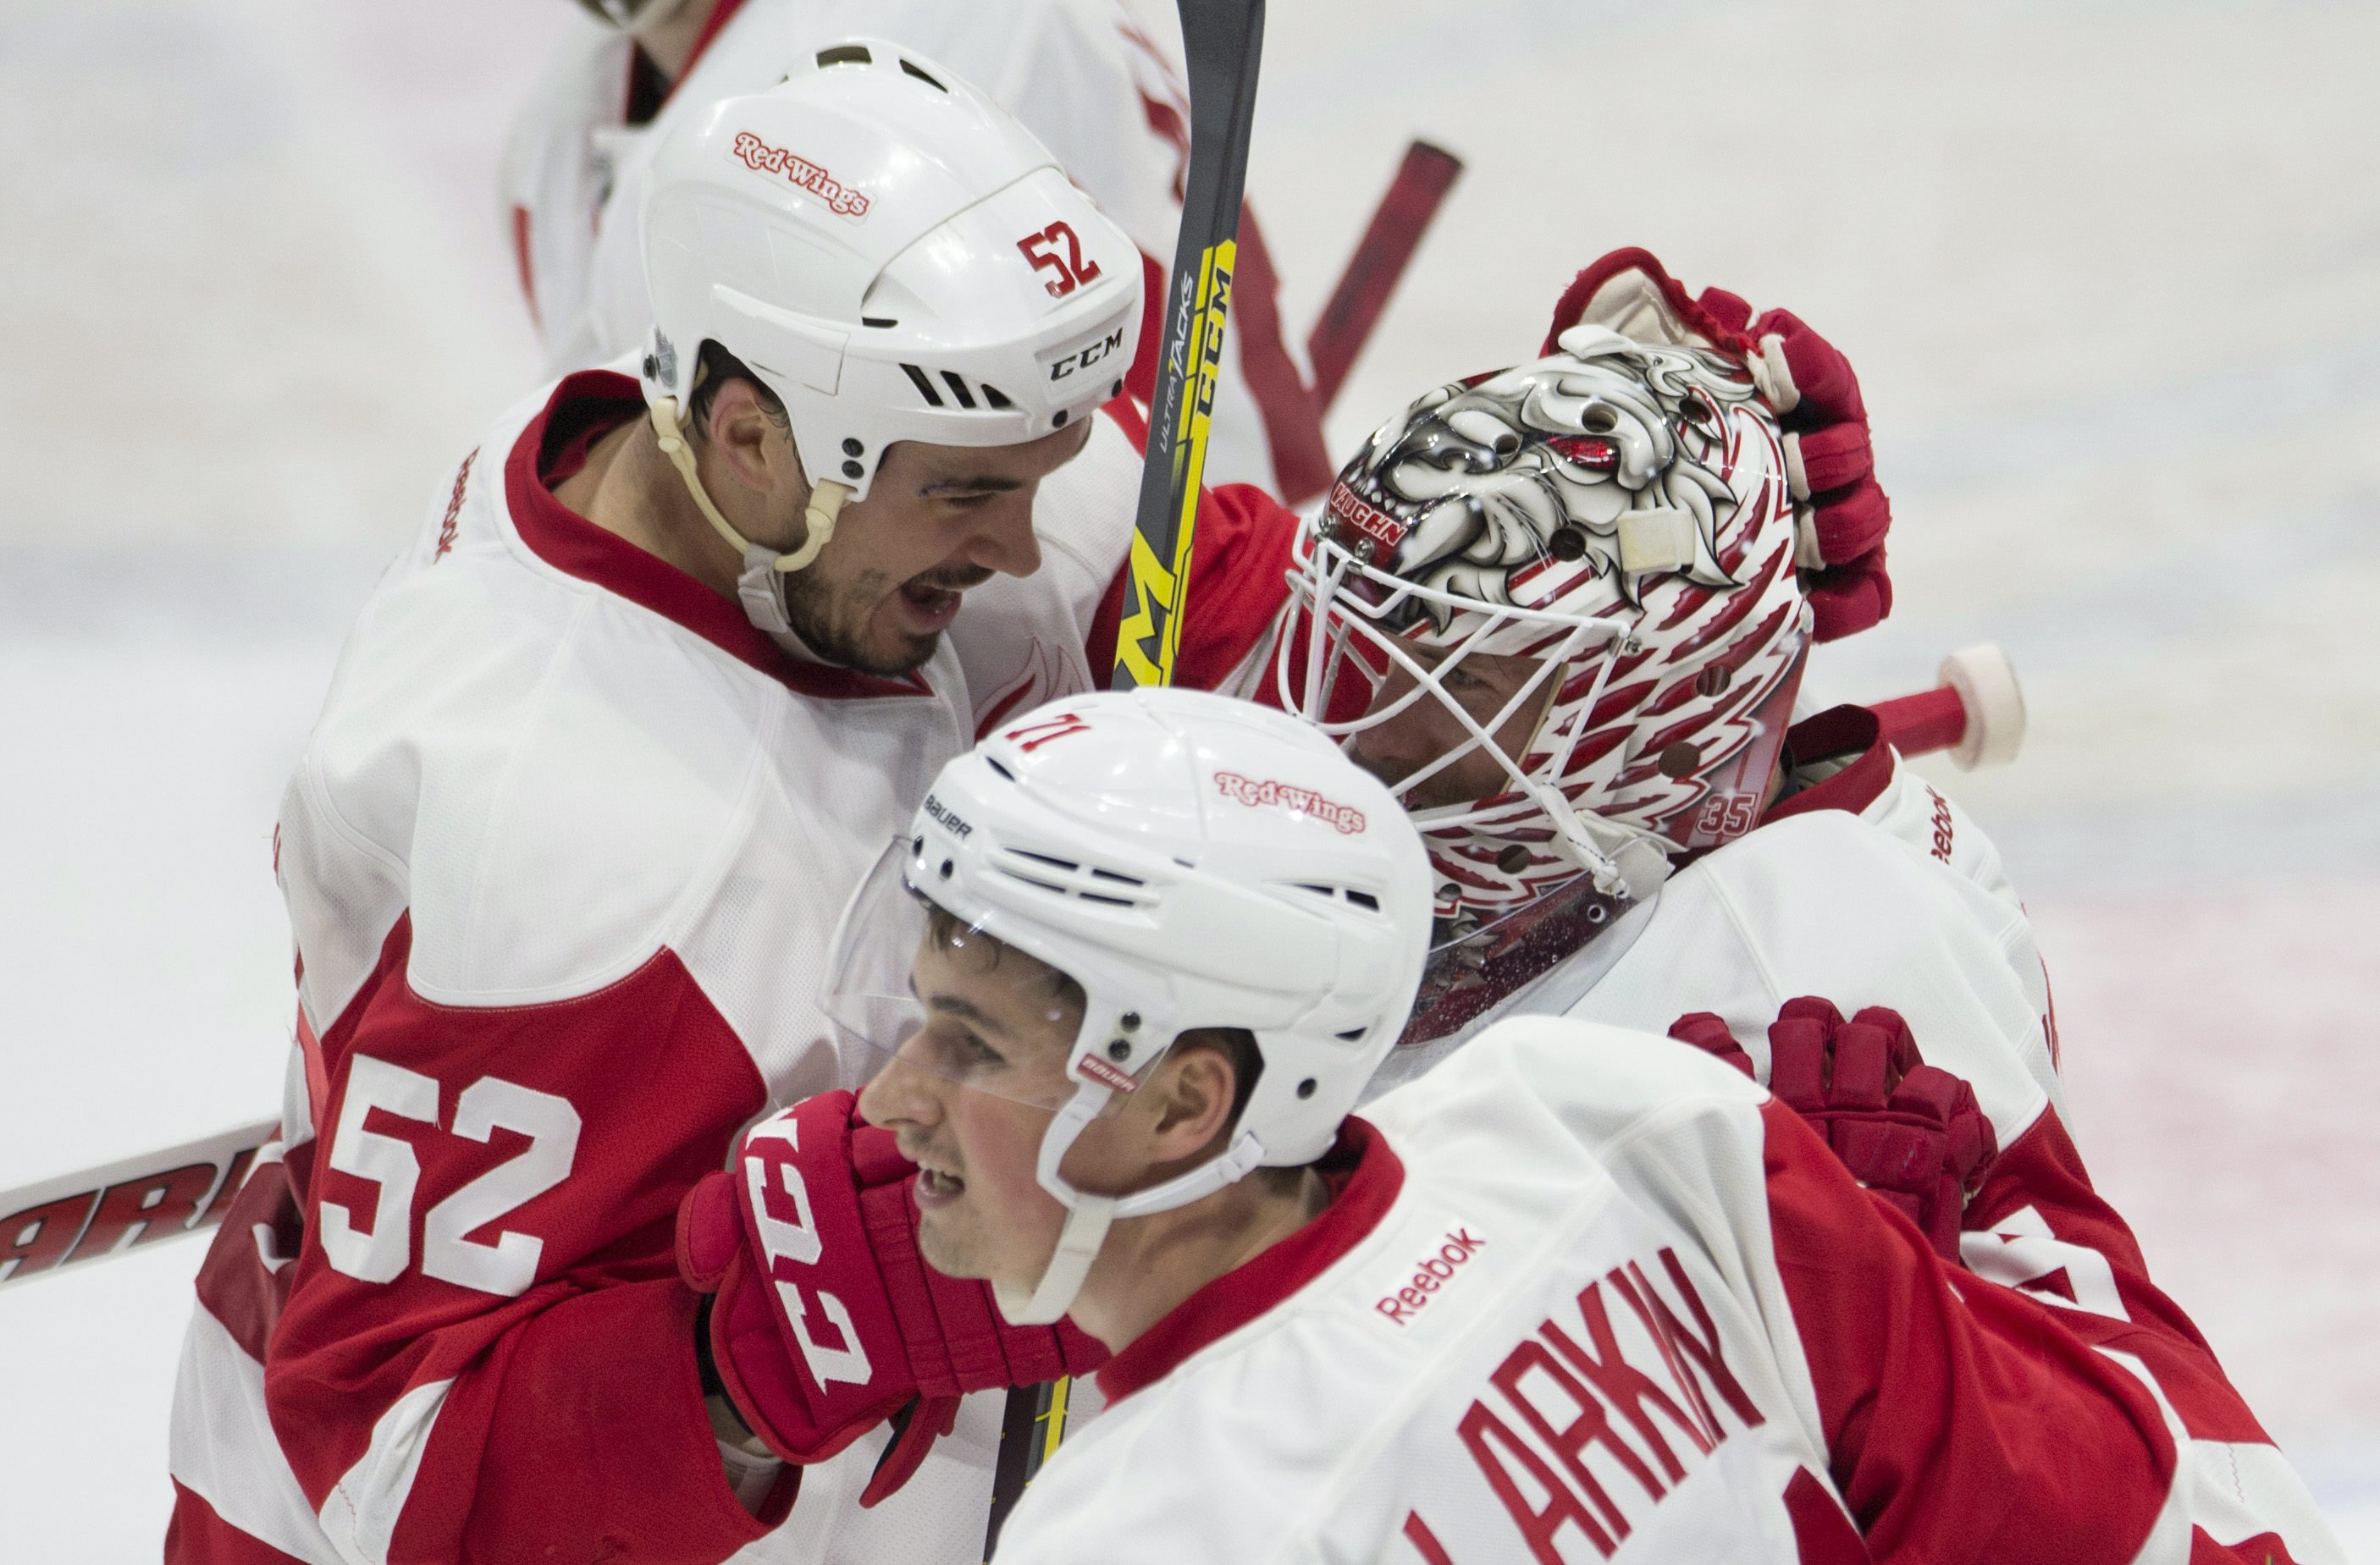 Detroit Red Wings center Dylan Larkin and defenseman Jonathan Ericsson, left, congratulate goalie Jimmy Howard after defeating the Ottawa Senators in overtime during NHL action in Ottawa, Ontario, Monday, Nov. 16, 2015. (Adrian Wyld/The Canadian Press via